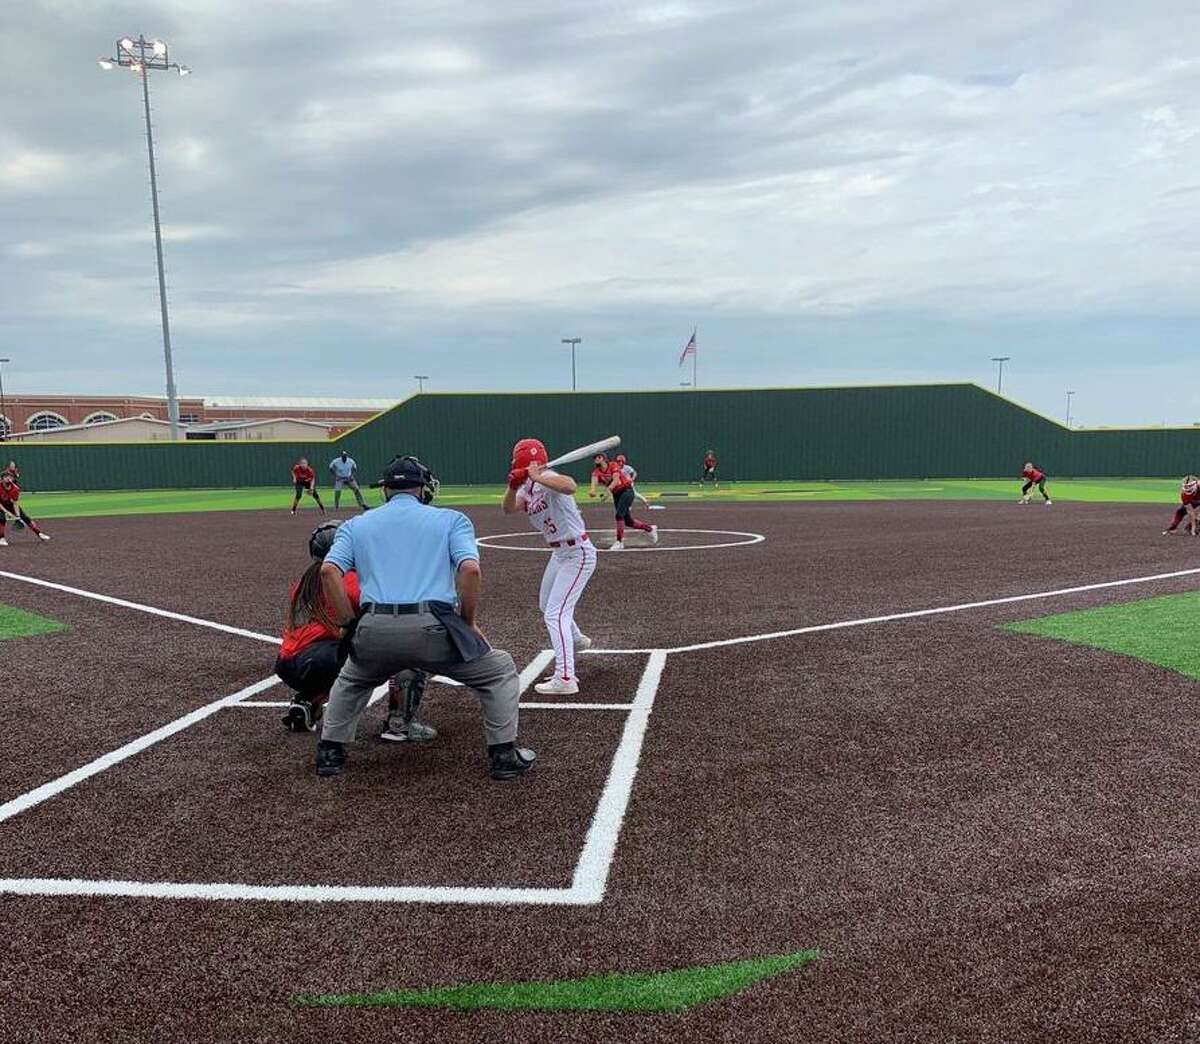 Katy and Fort Bend Austin compete in game two of their Region III-6A bi-district series April 30. The game was relocated to Cypress Ranch High School due to rain. Katy won 11-1 to clinch the series.